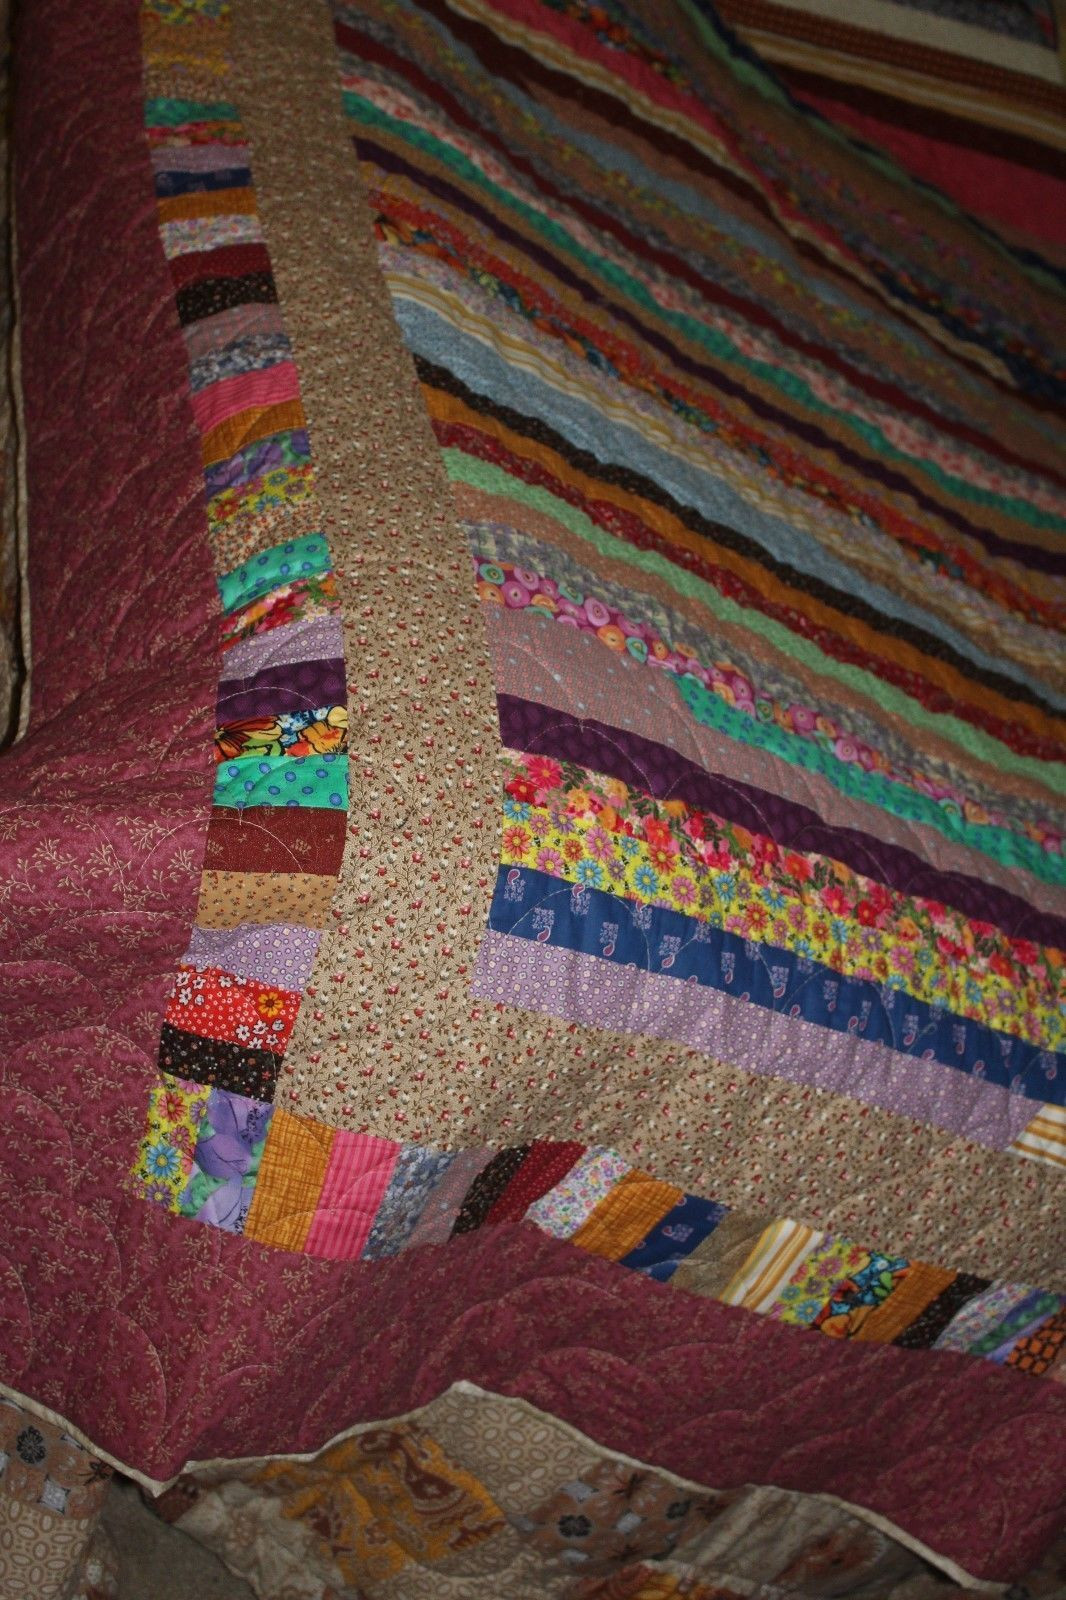 Quilt handmade machine quilted queen or full size all cotton new 87 by 103